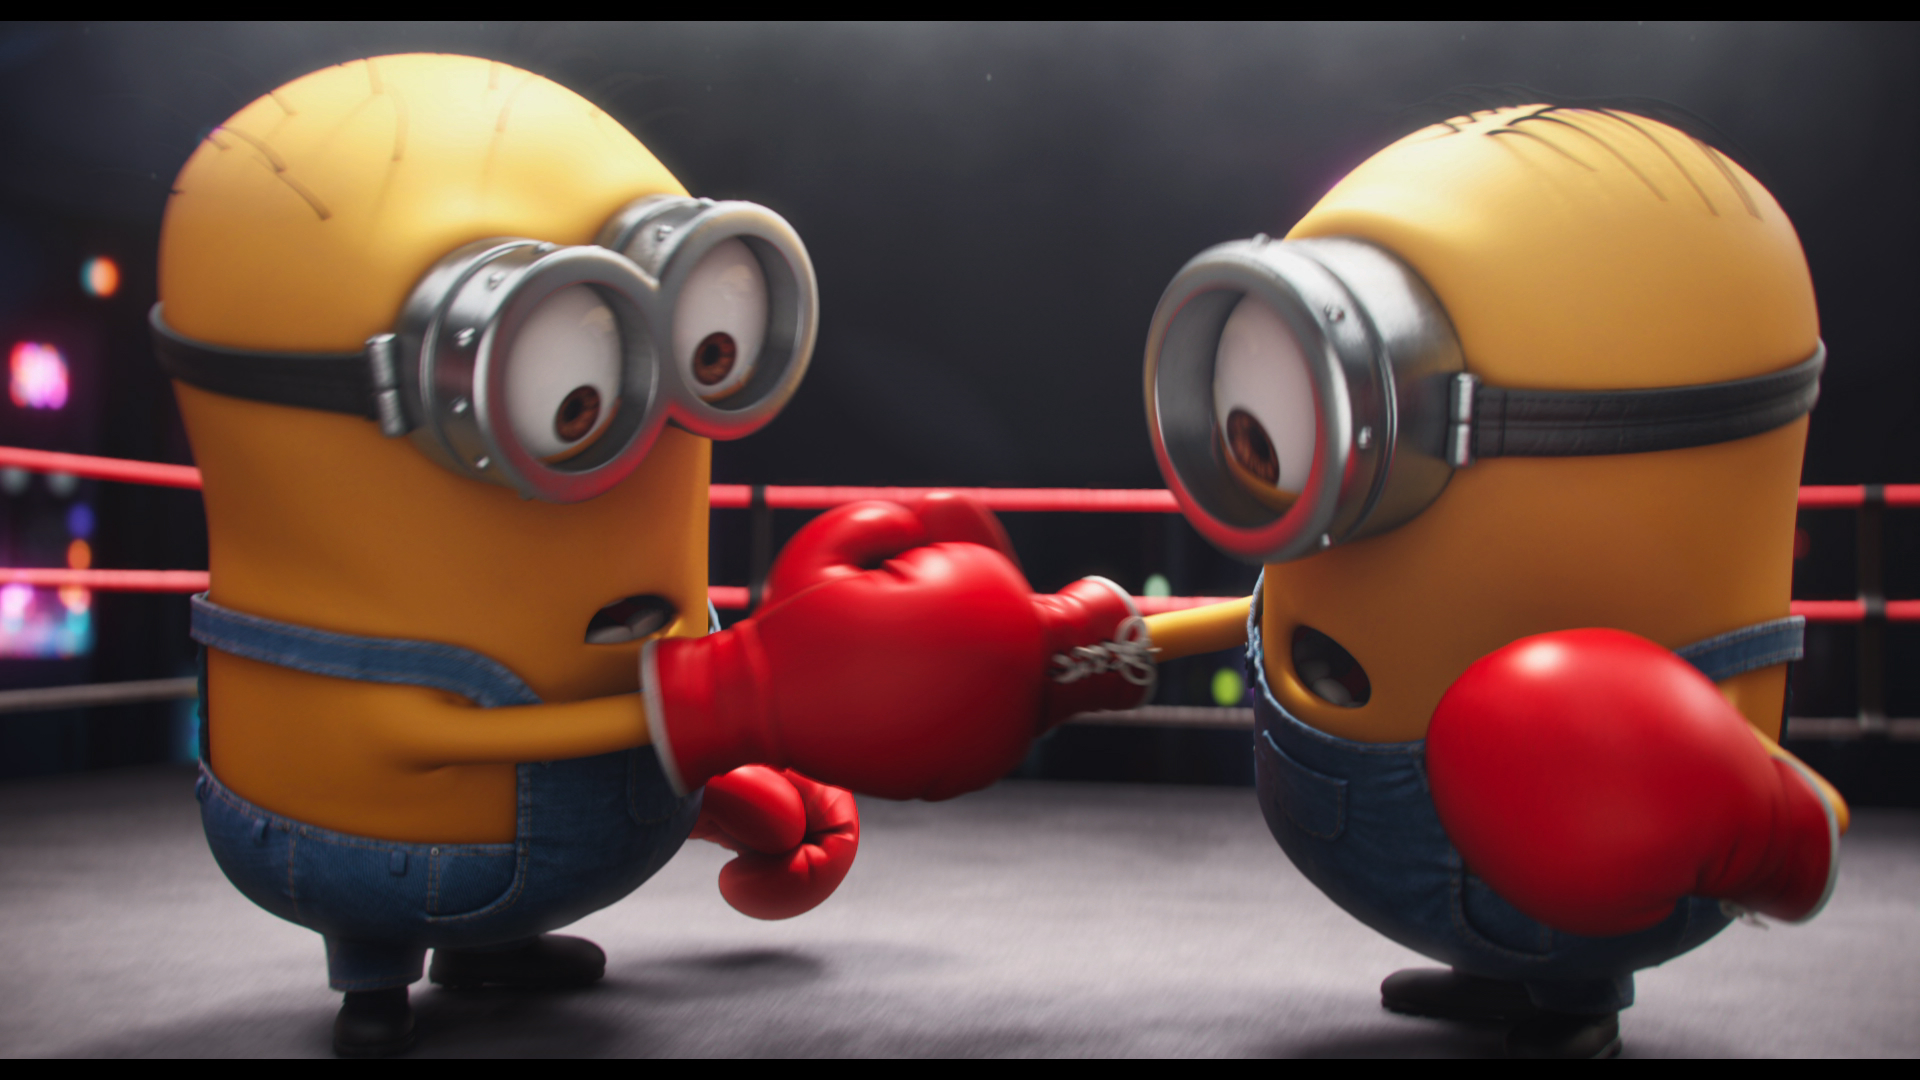 movie review despicable me 2 essay The third helping of the blockbuster despicable me series featuring steve carell  and  on the face of it, this third film simply extends the sentimental  2 has  definitively moved into secret life of pets world), despicable me 3.